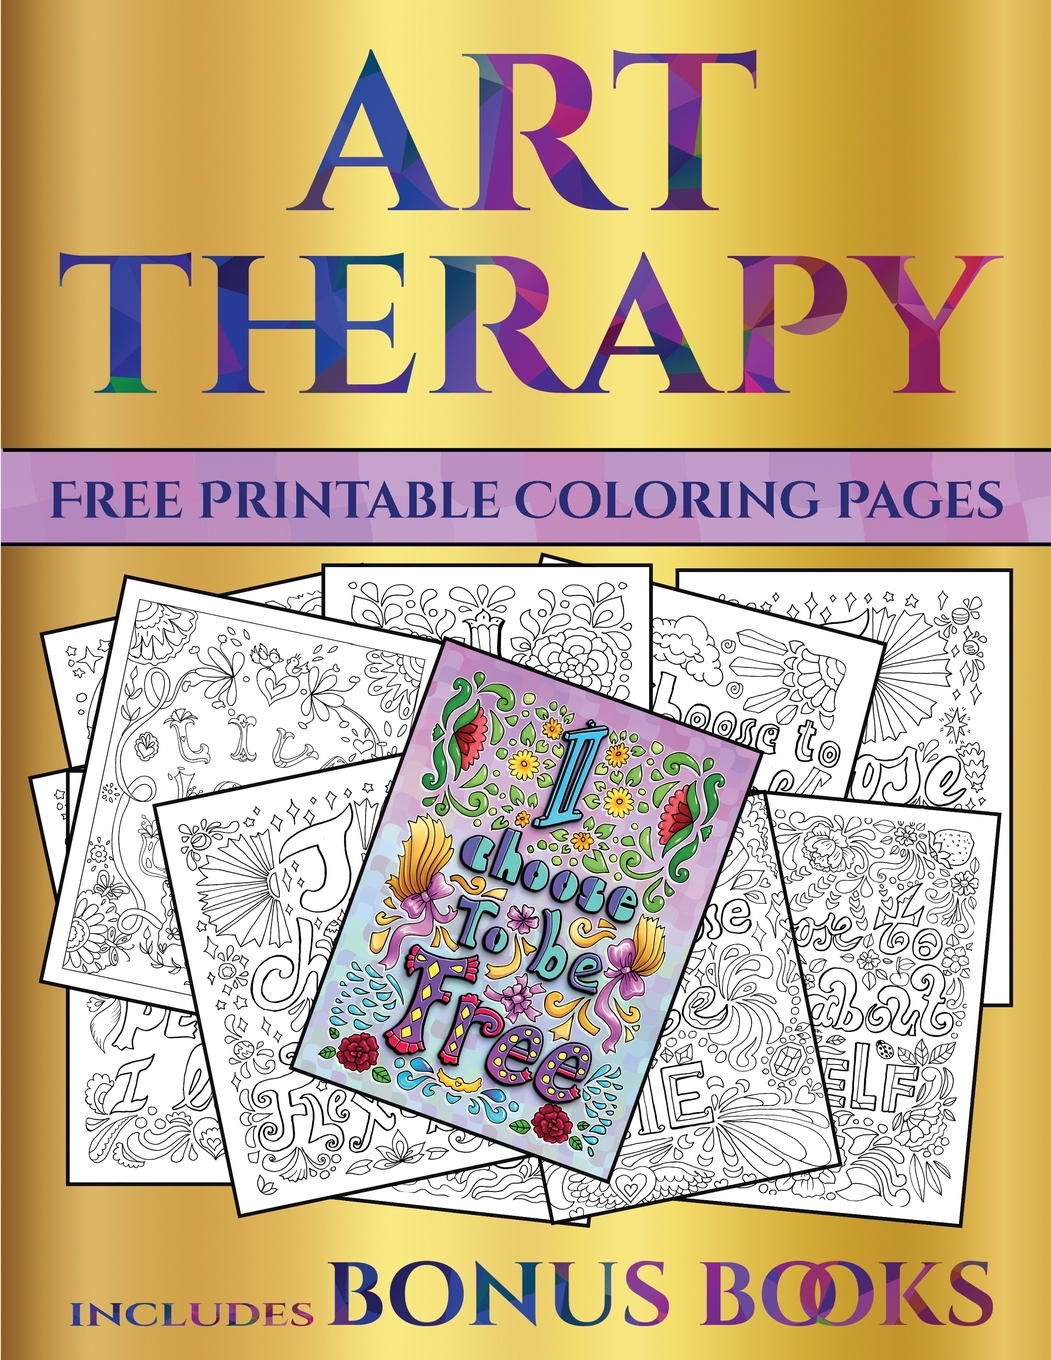 - Free Printable Coloring Pages: Free Printable Coloring Pages (Art Therapy):  This Book Has 40 Art